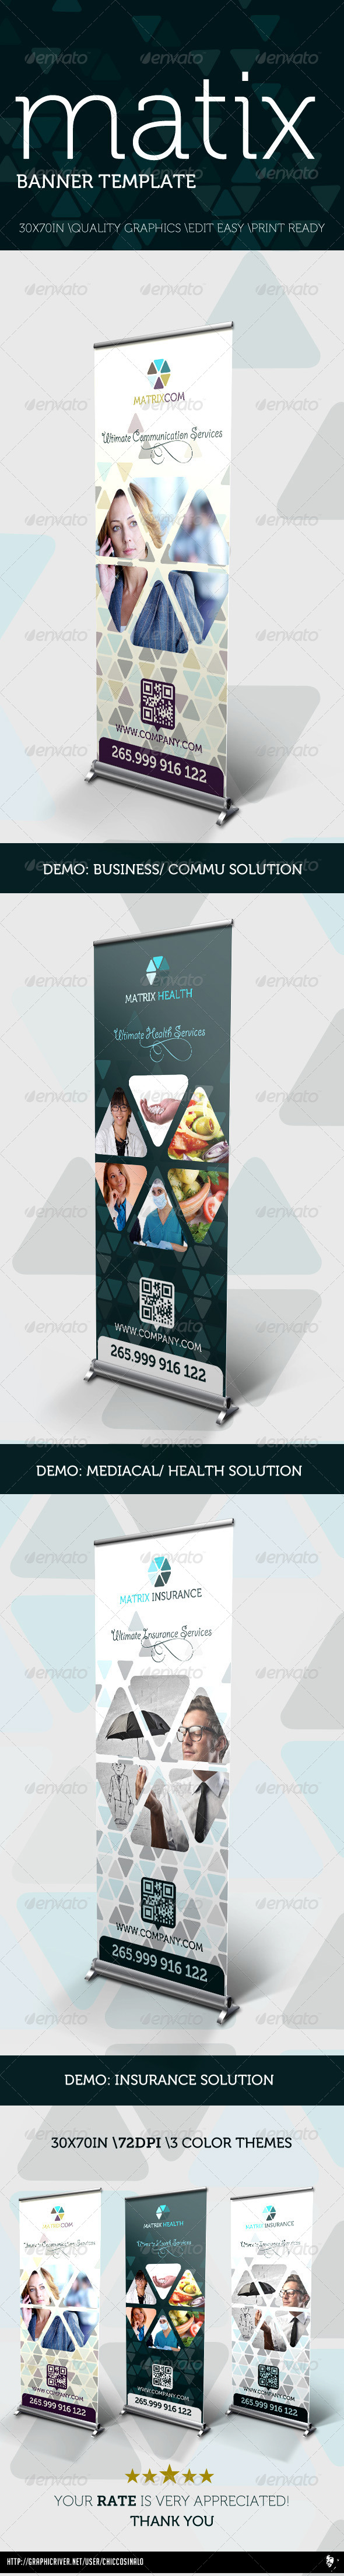 Matrix Banner Template - Signage Print Templates